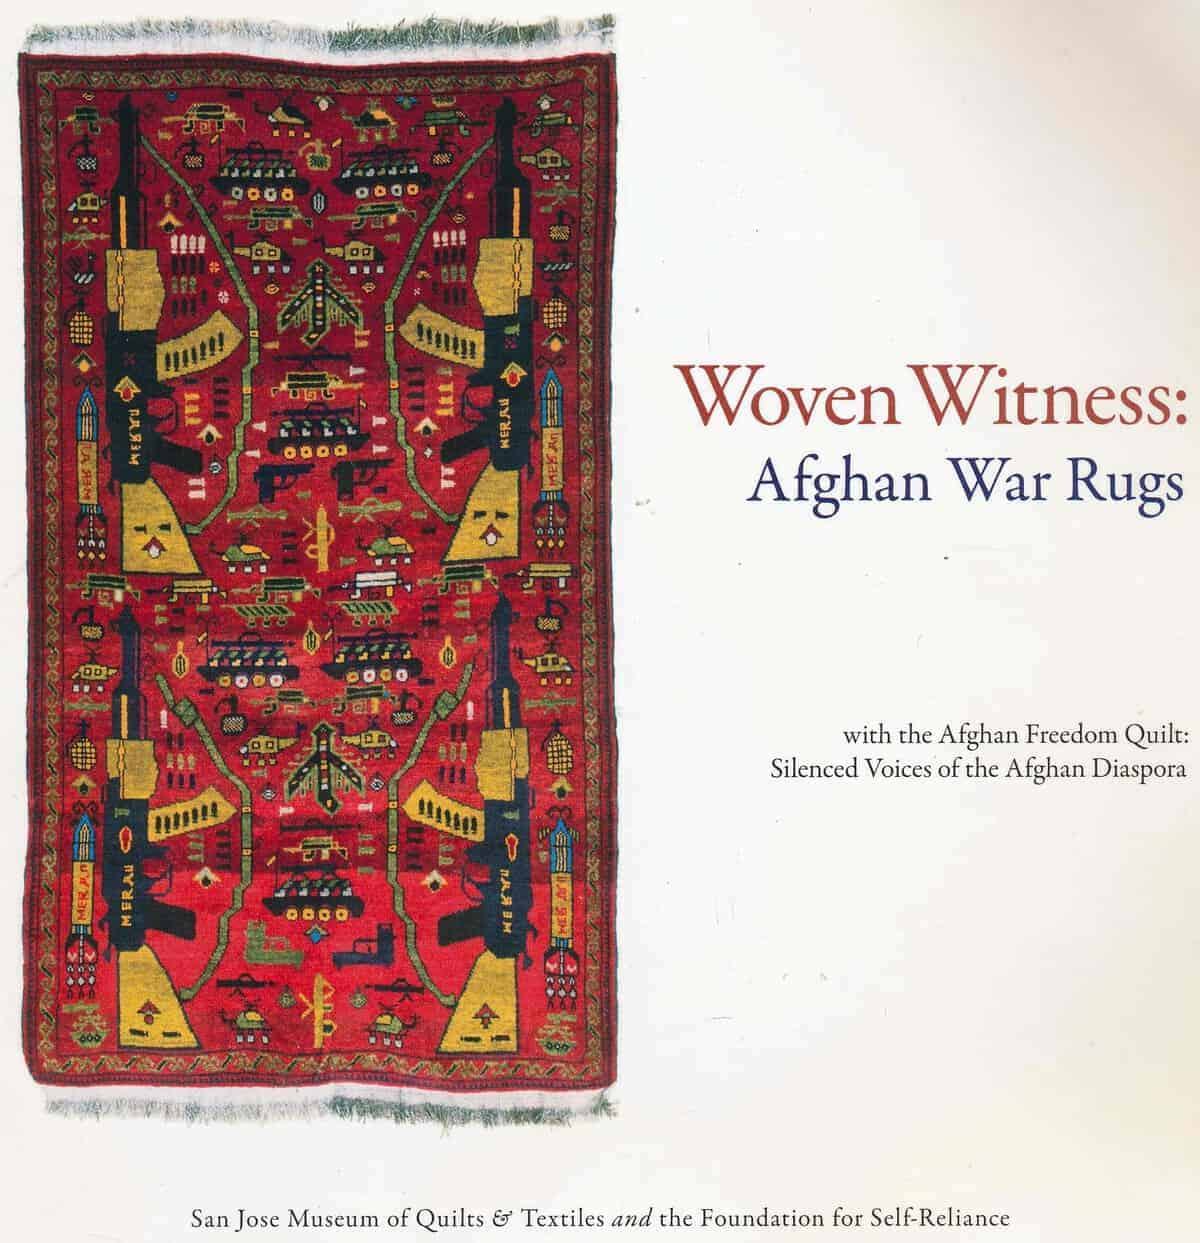 Woven Witness: Afghan War Rugs